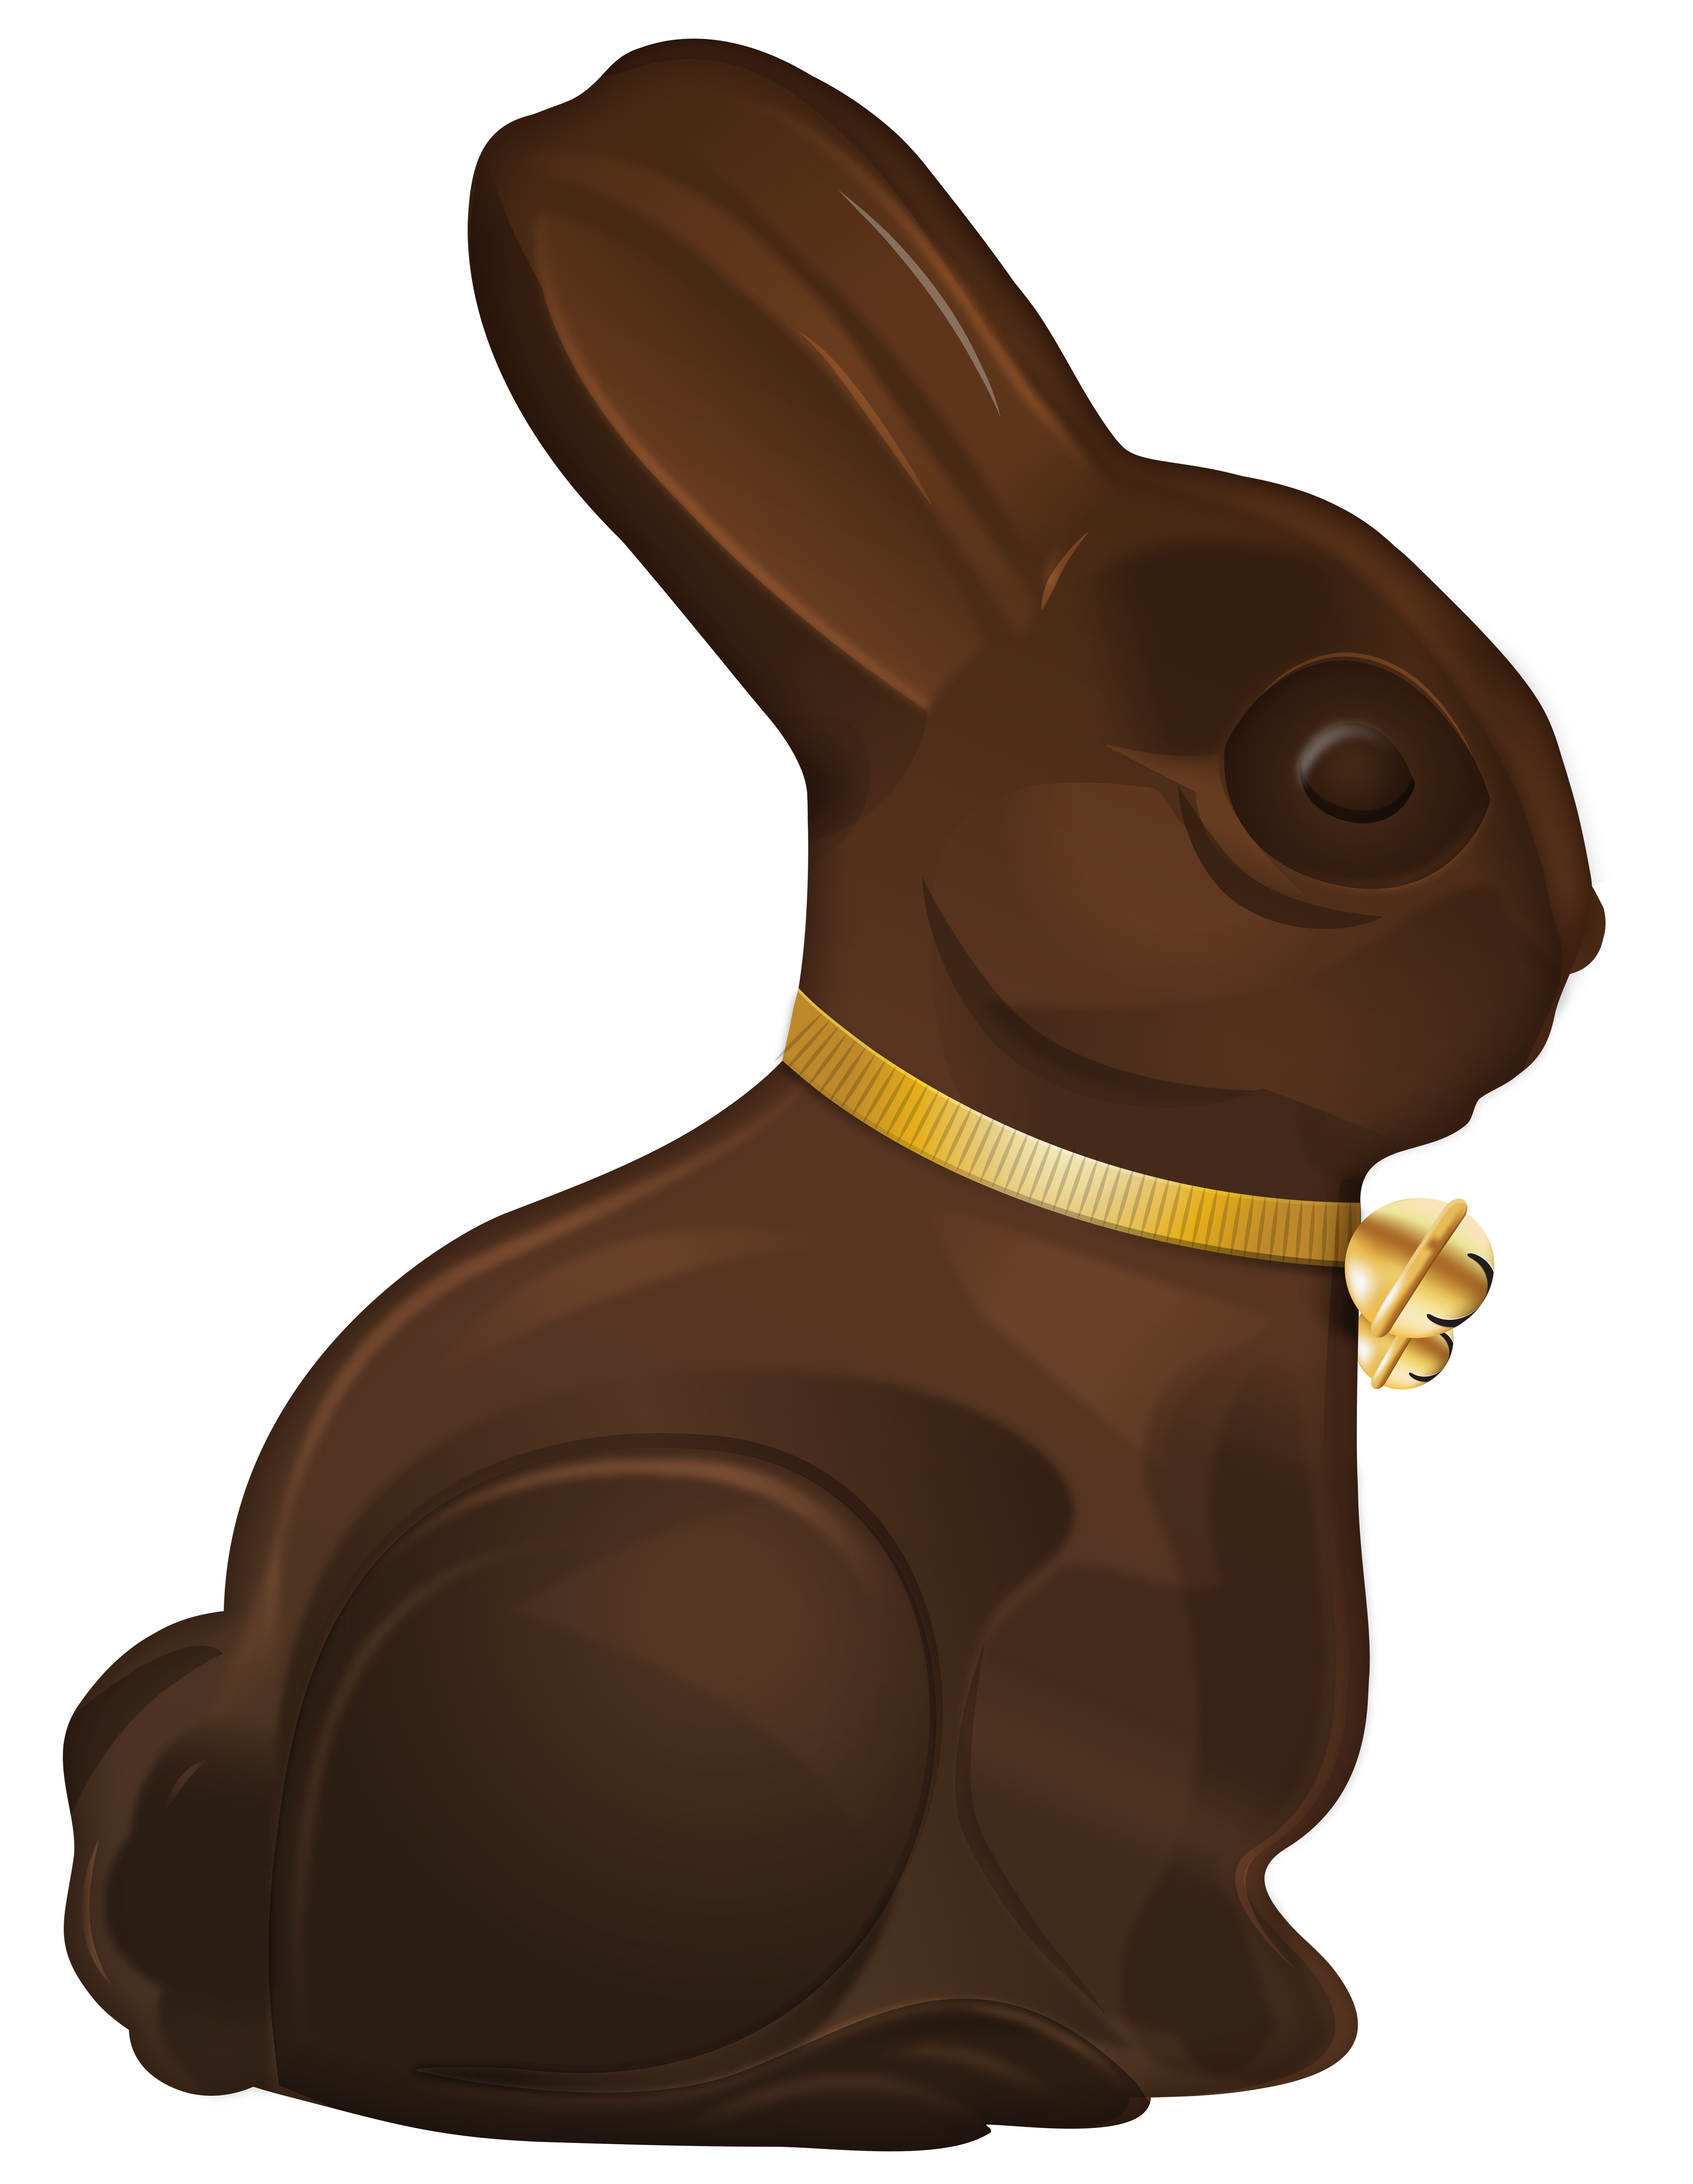 Chocolate Easter Bunny Clipart.